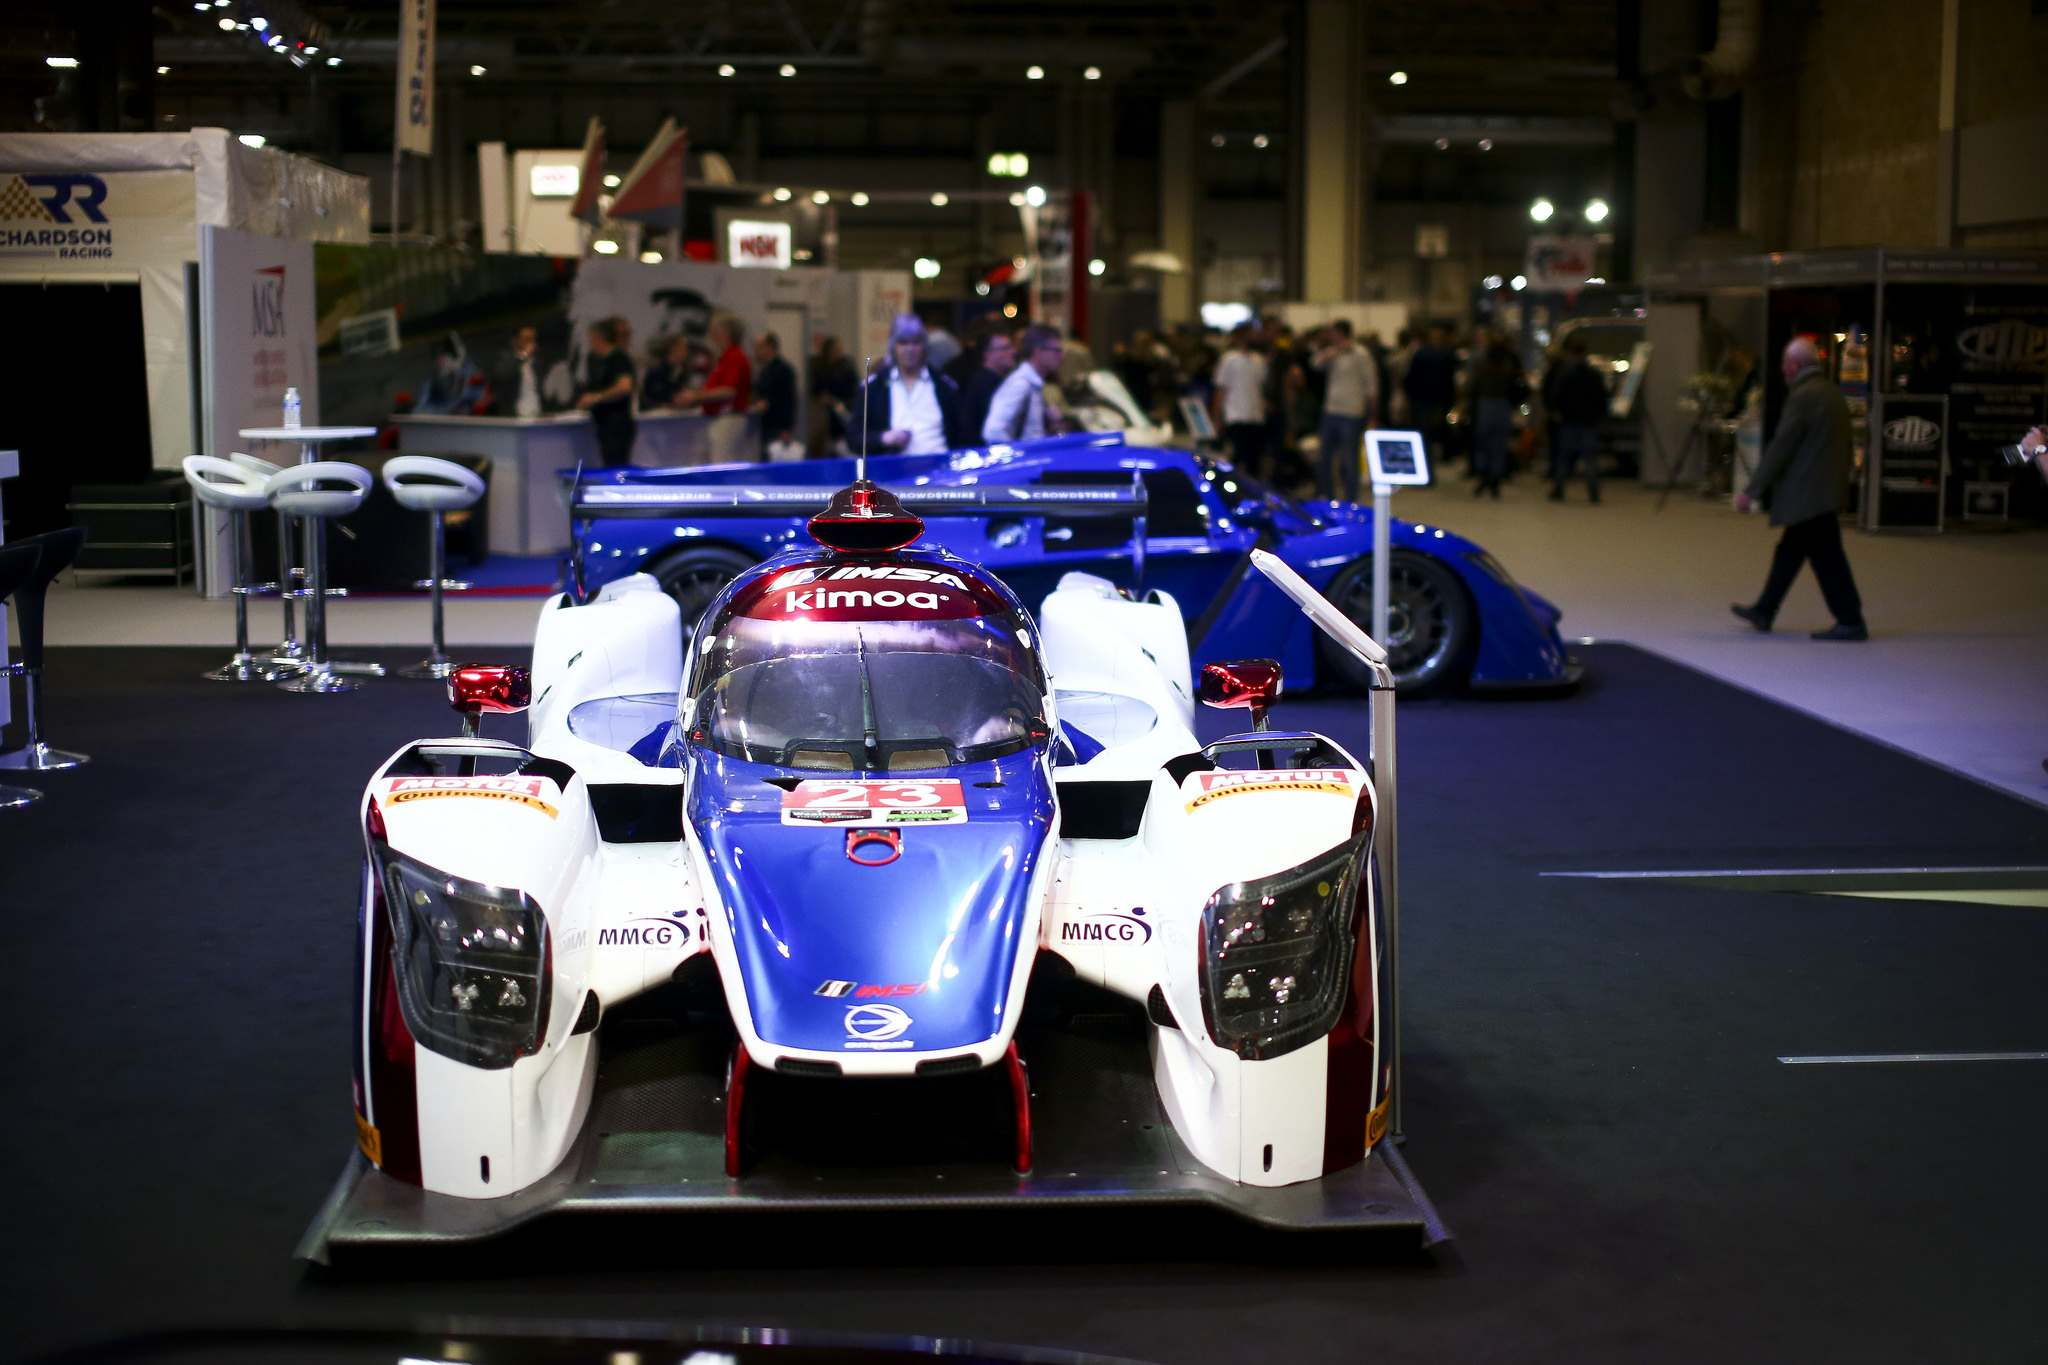 ligier 20181 Ligier at Autosport International Show 2018